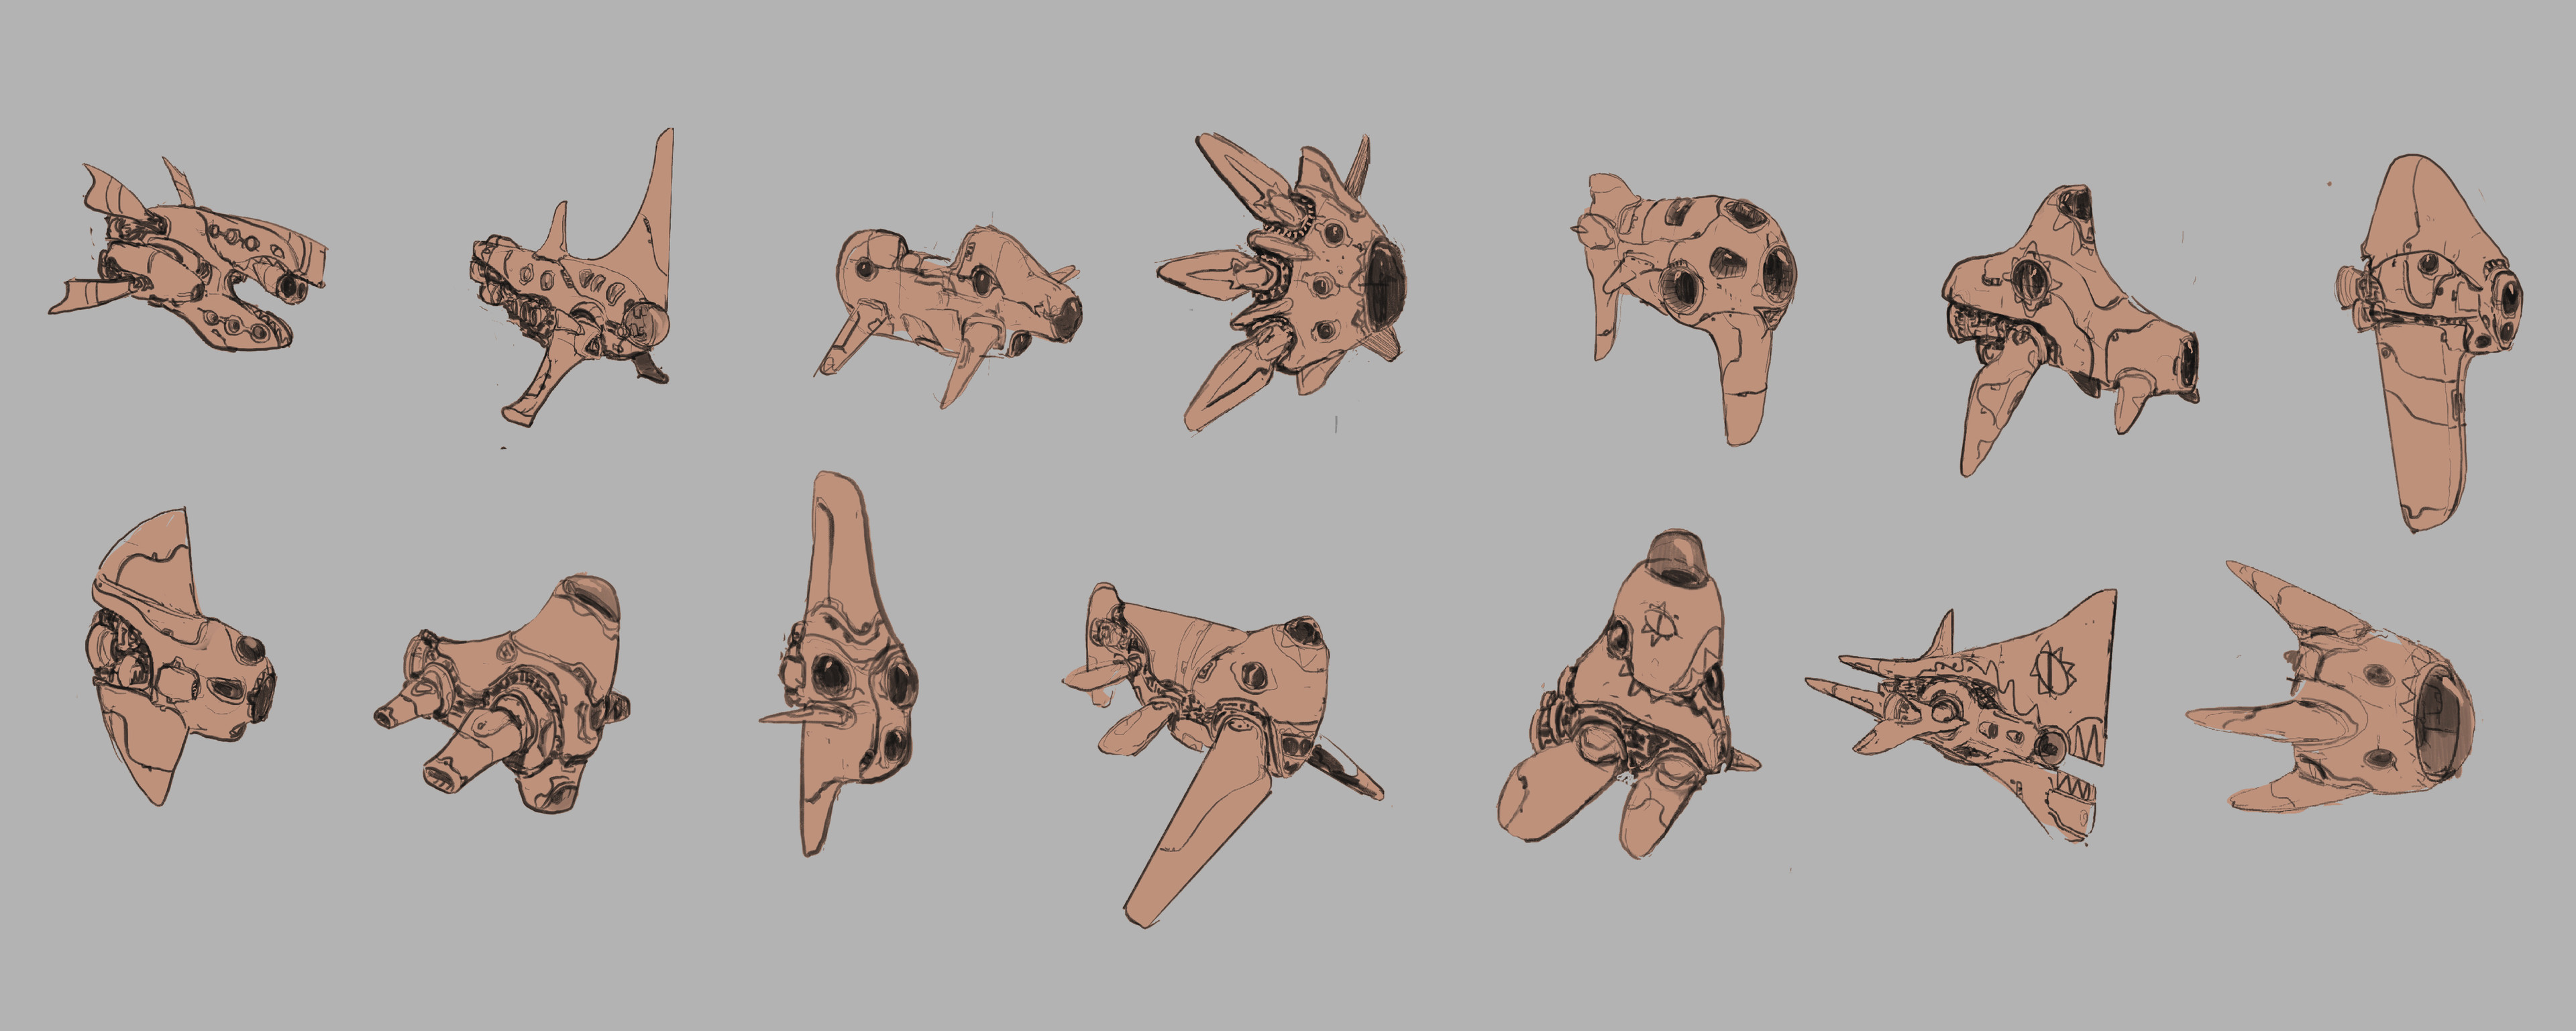 Initial Exploratory Sketches, done to find the right personality and look for the ship.